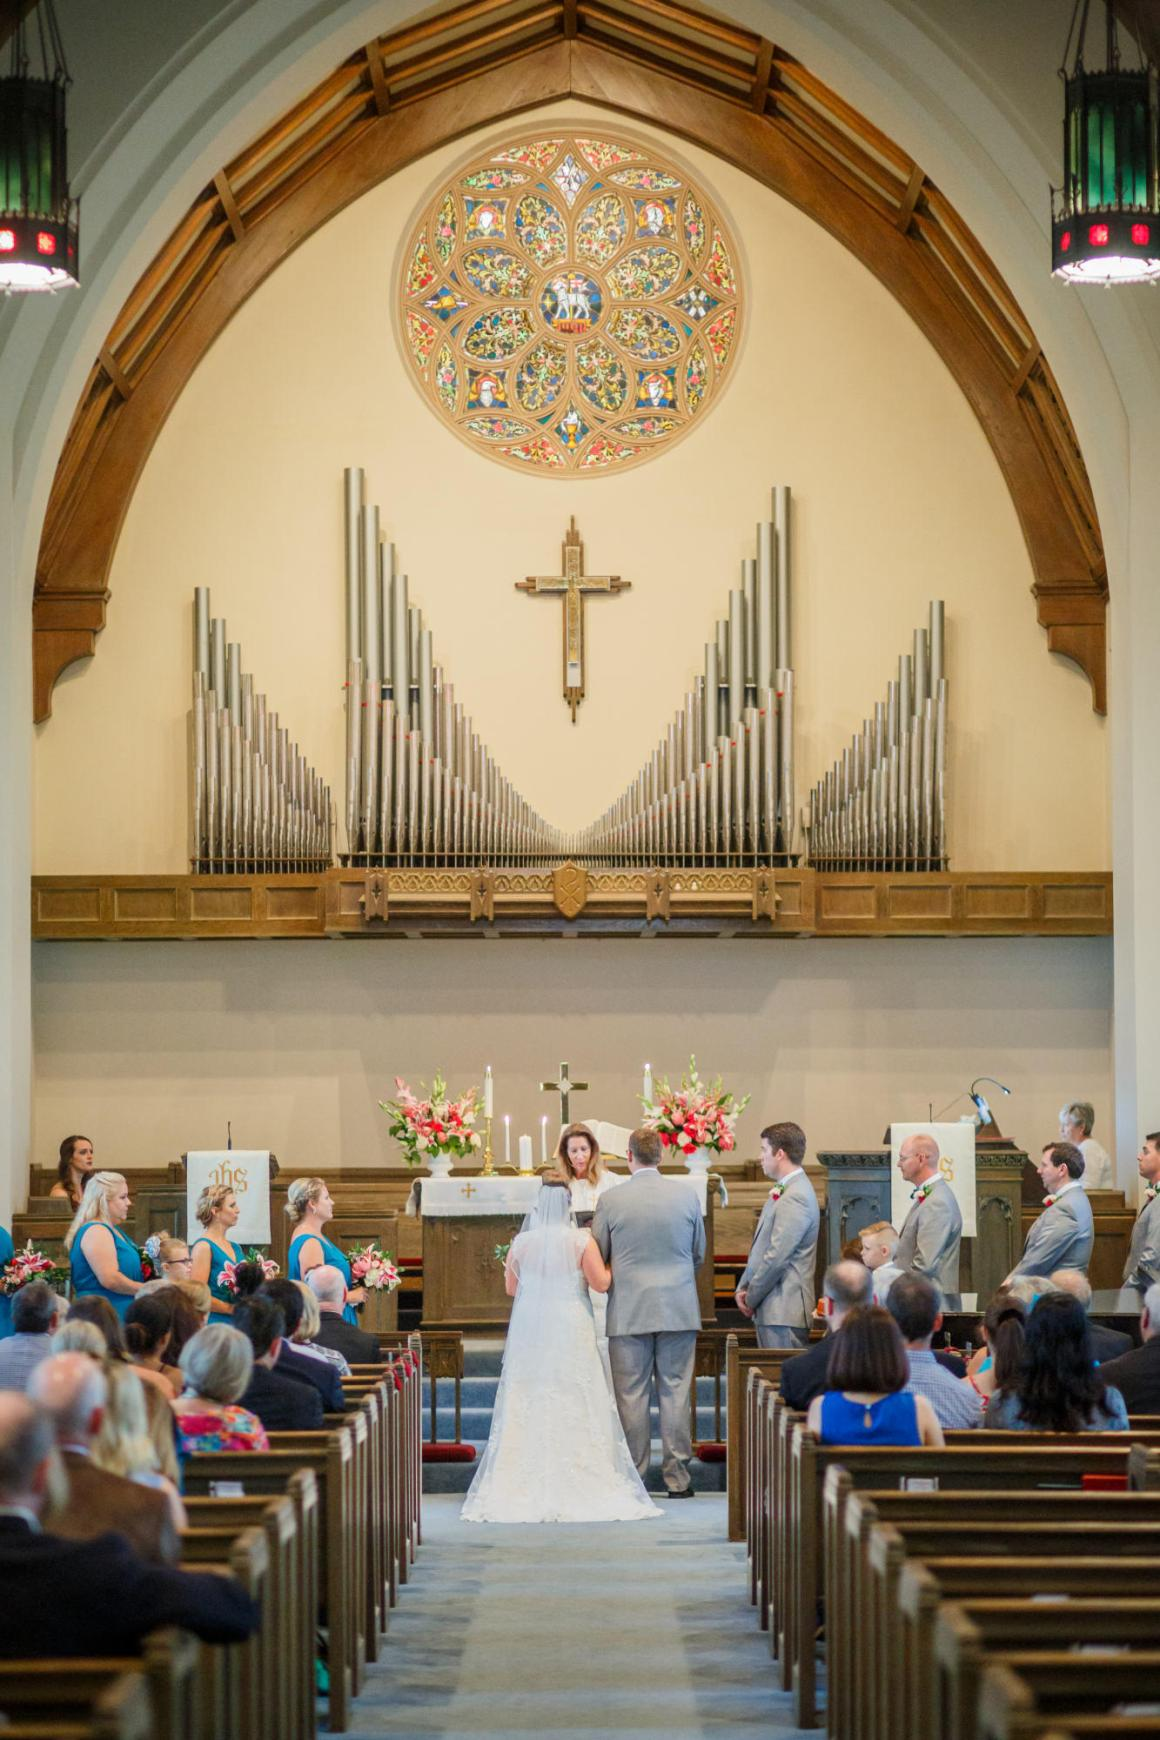 Bride and groom stand at the alter in United Methodist Church in Seguin Texas with large organ in the background.